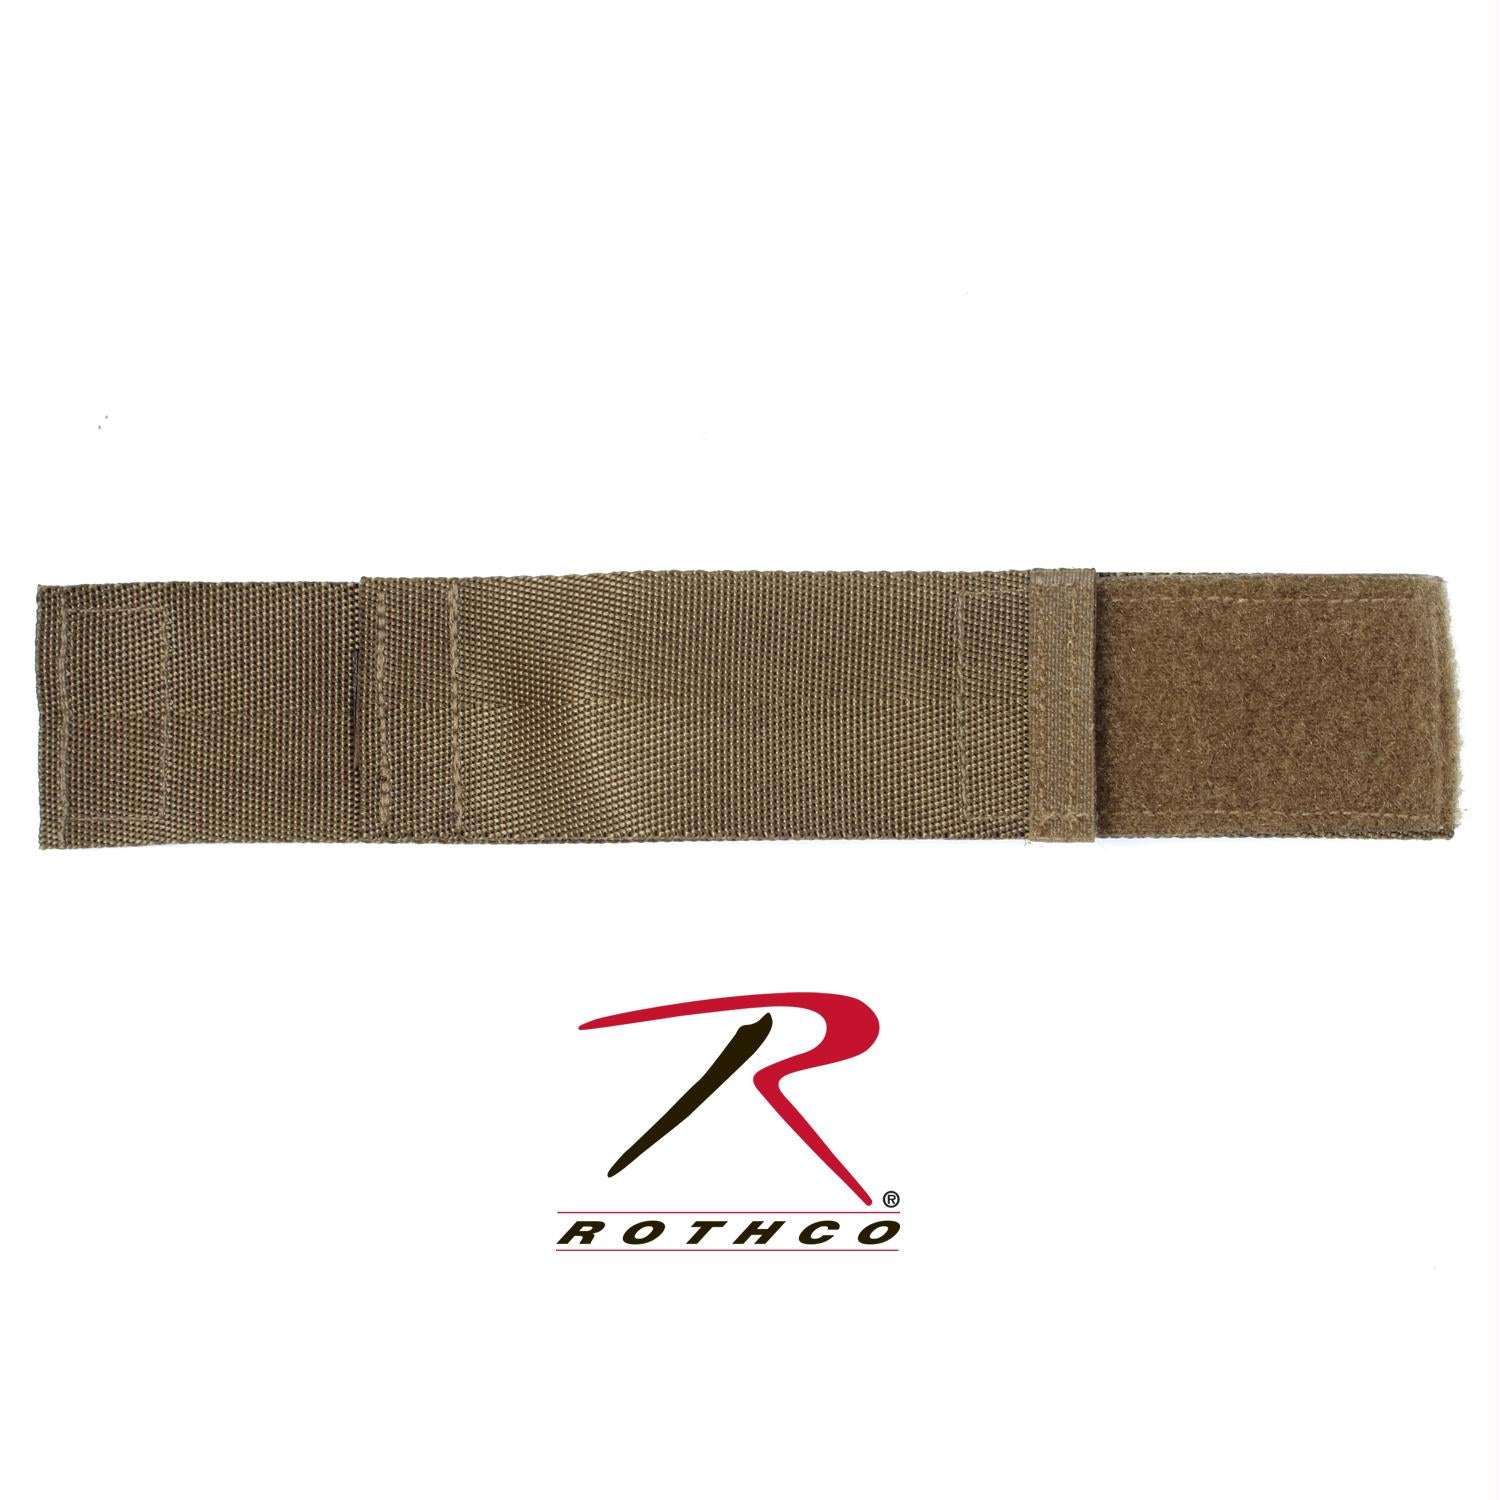 Rothco Commando Watchband - Coyote Brown